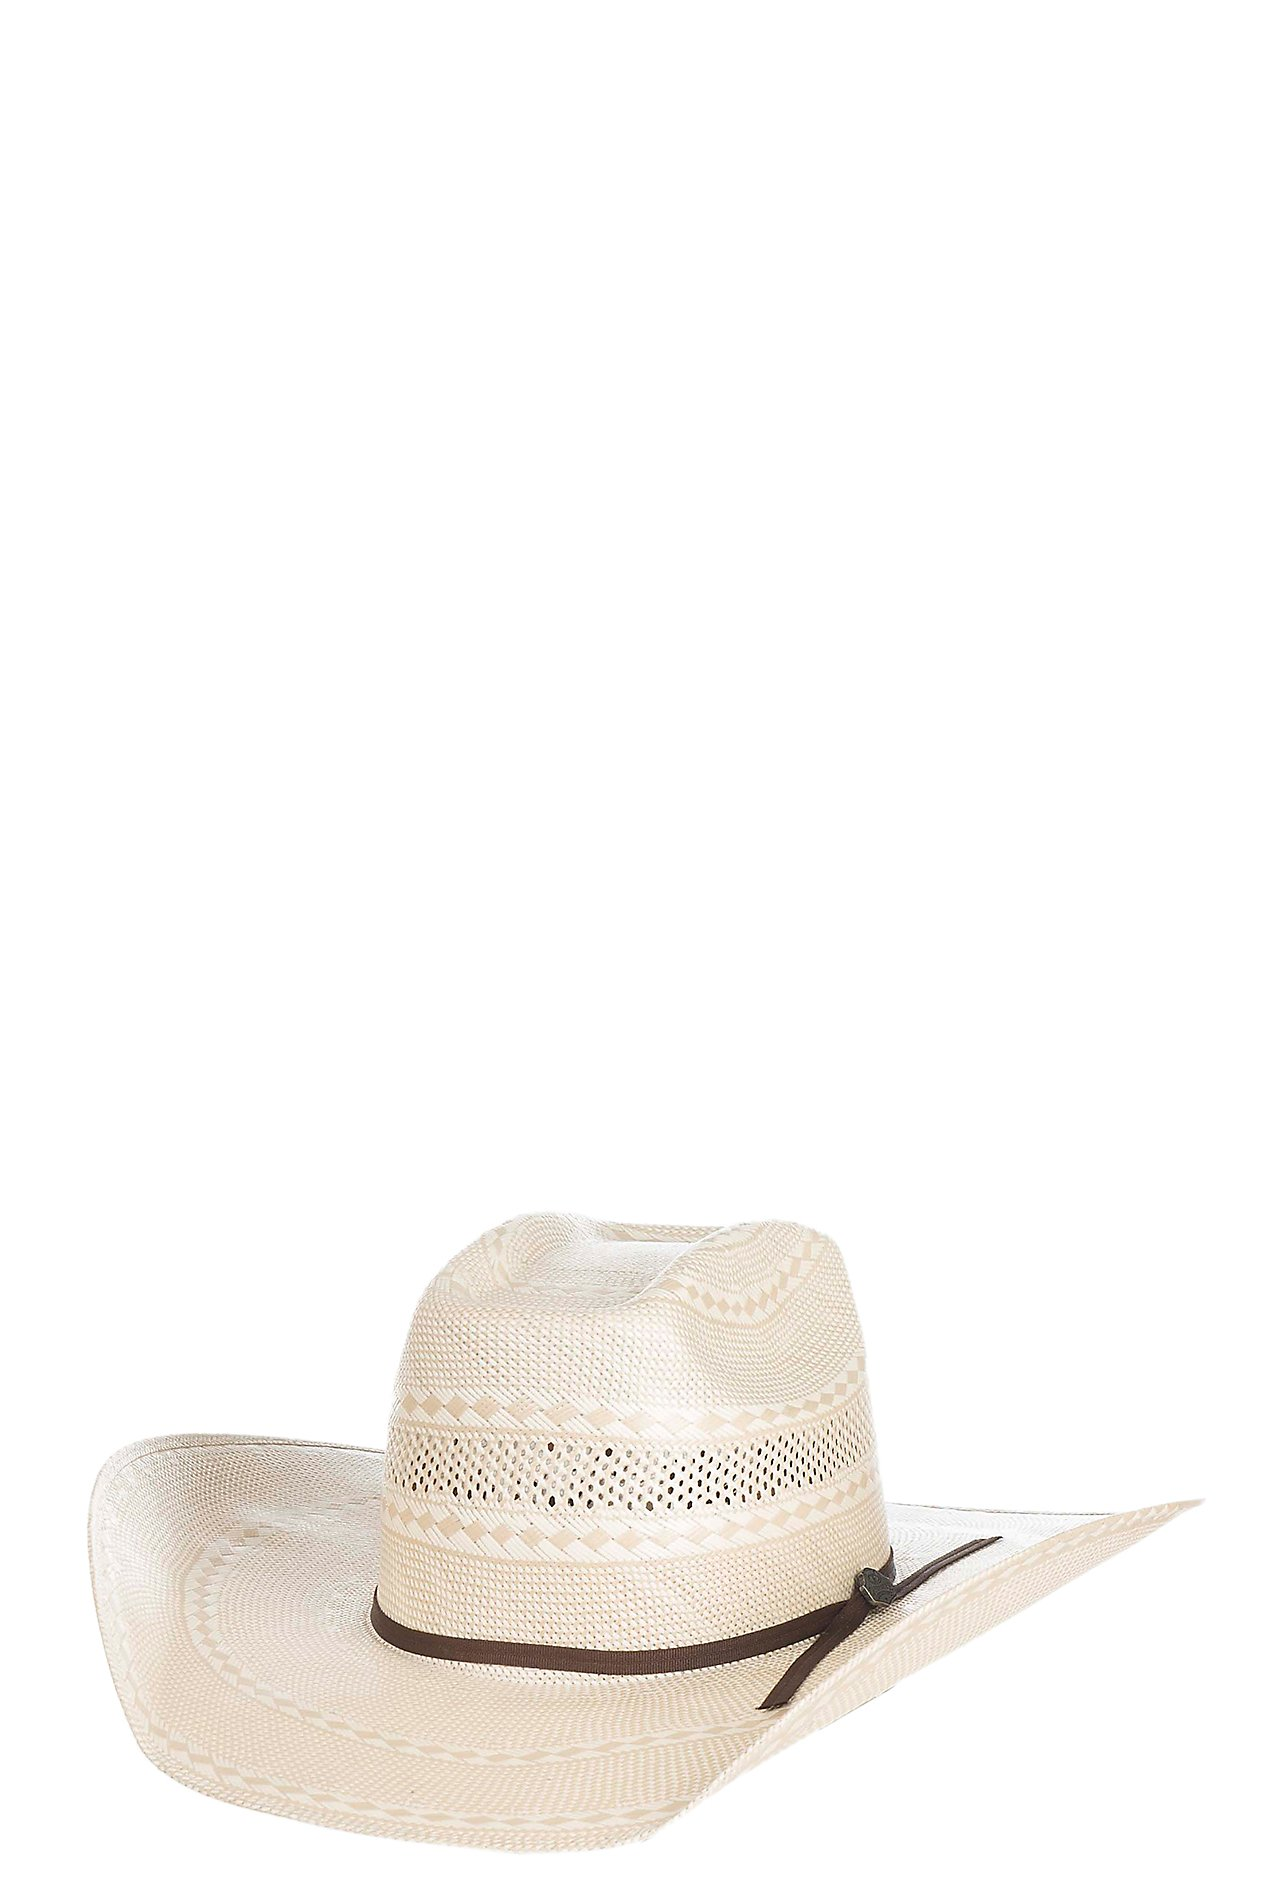 c527845f90f Cavender s Cowboy Collection 10X Two Tone Vented Cown Straw Cowboy Hat